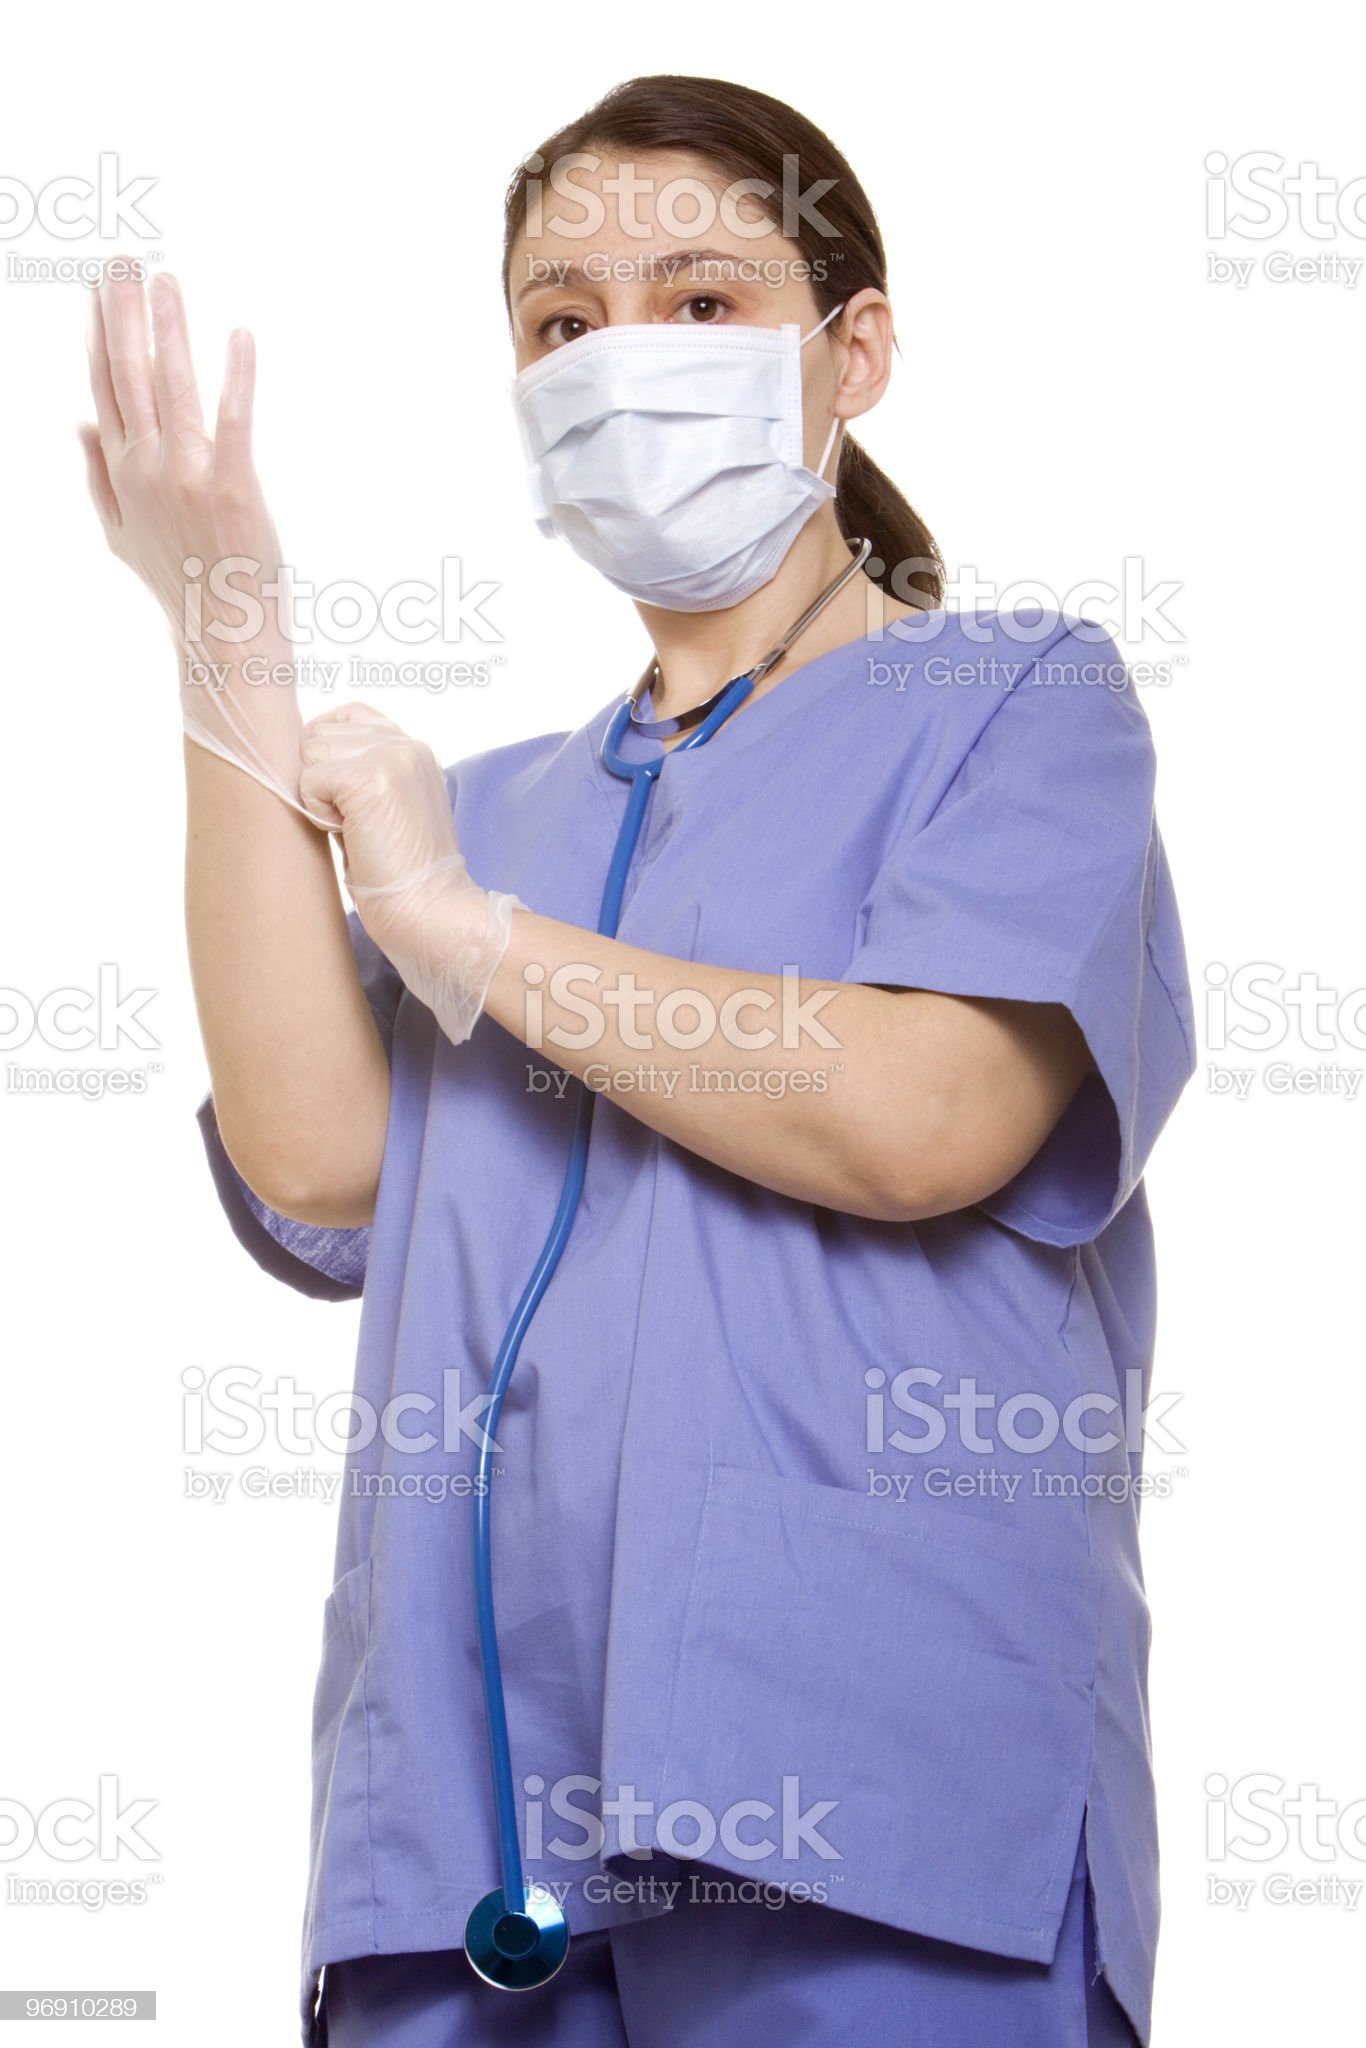 Doctor putting her gloves on royalty-free stock photo